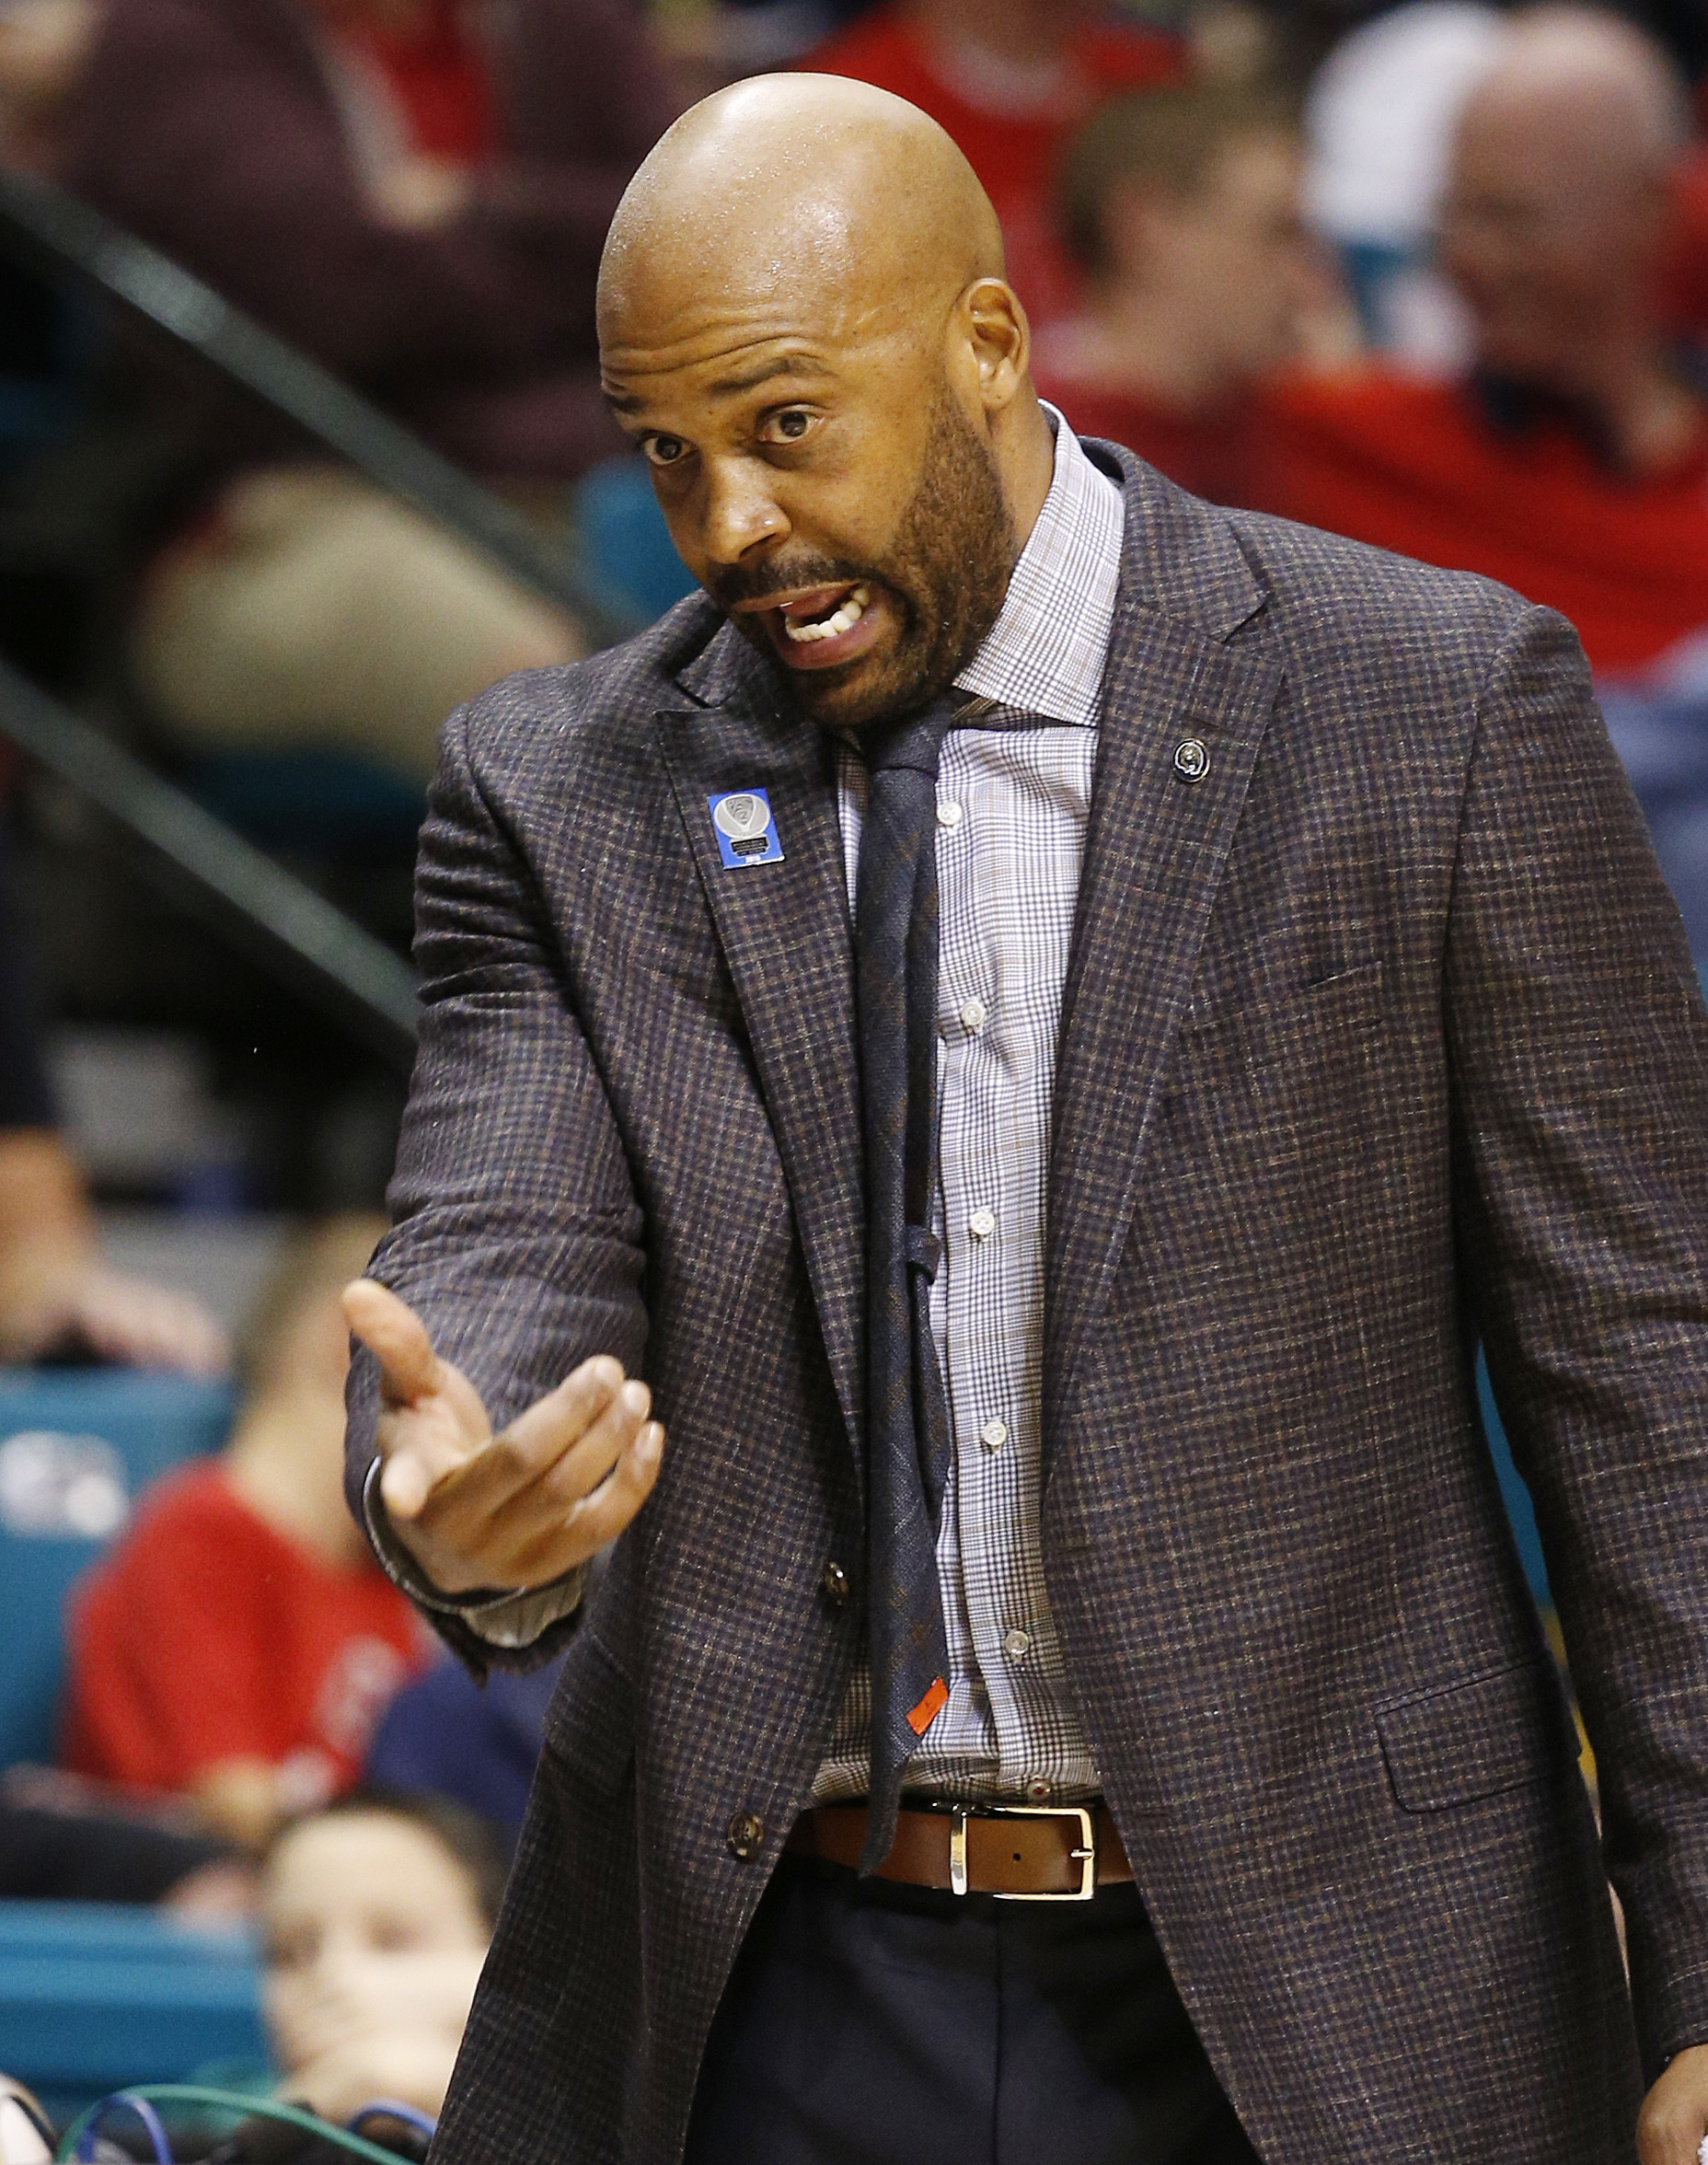 California coach Cuonzo Martin motions to his players during the first half of an NCAA college basketball game against Utah in the semifinals of the Pac-12 men's tournament Friday, March 11, 2016, in Las Vegas. (AP Photo/John Locher)